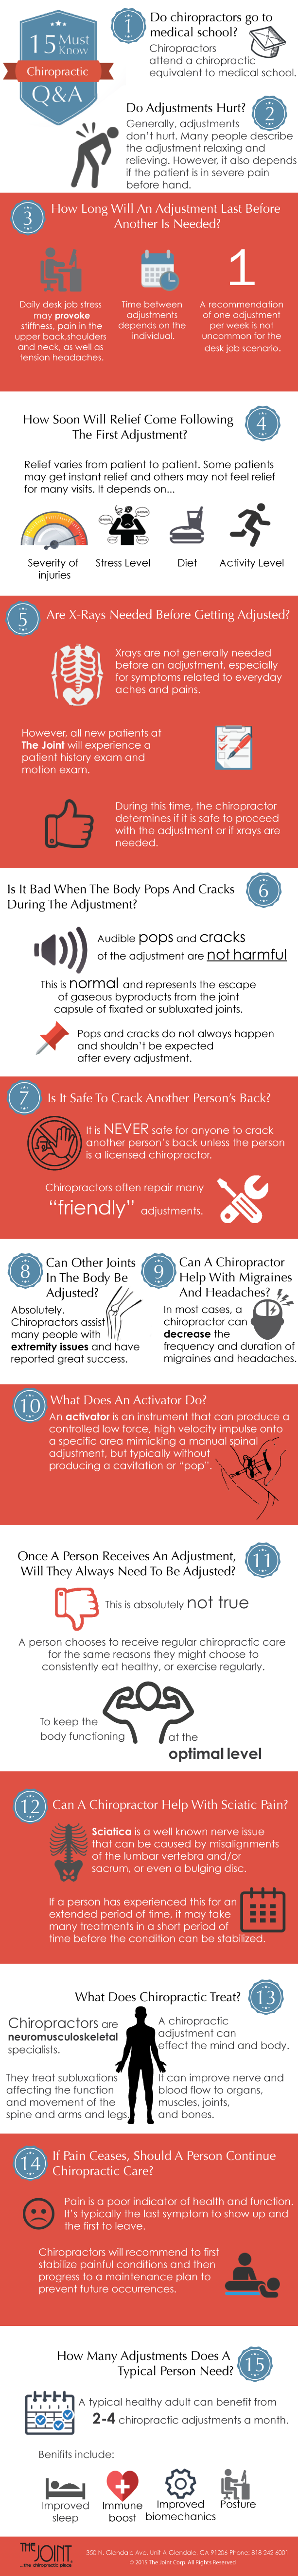 15 Things You Should Know About Chiropractic Care